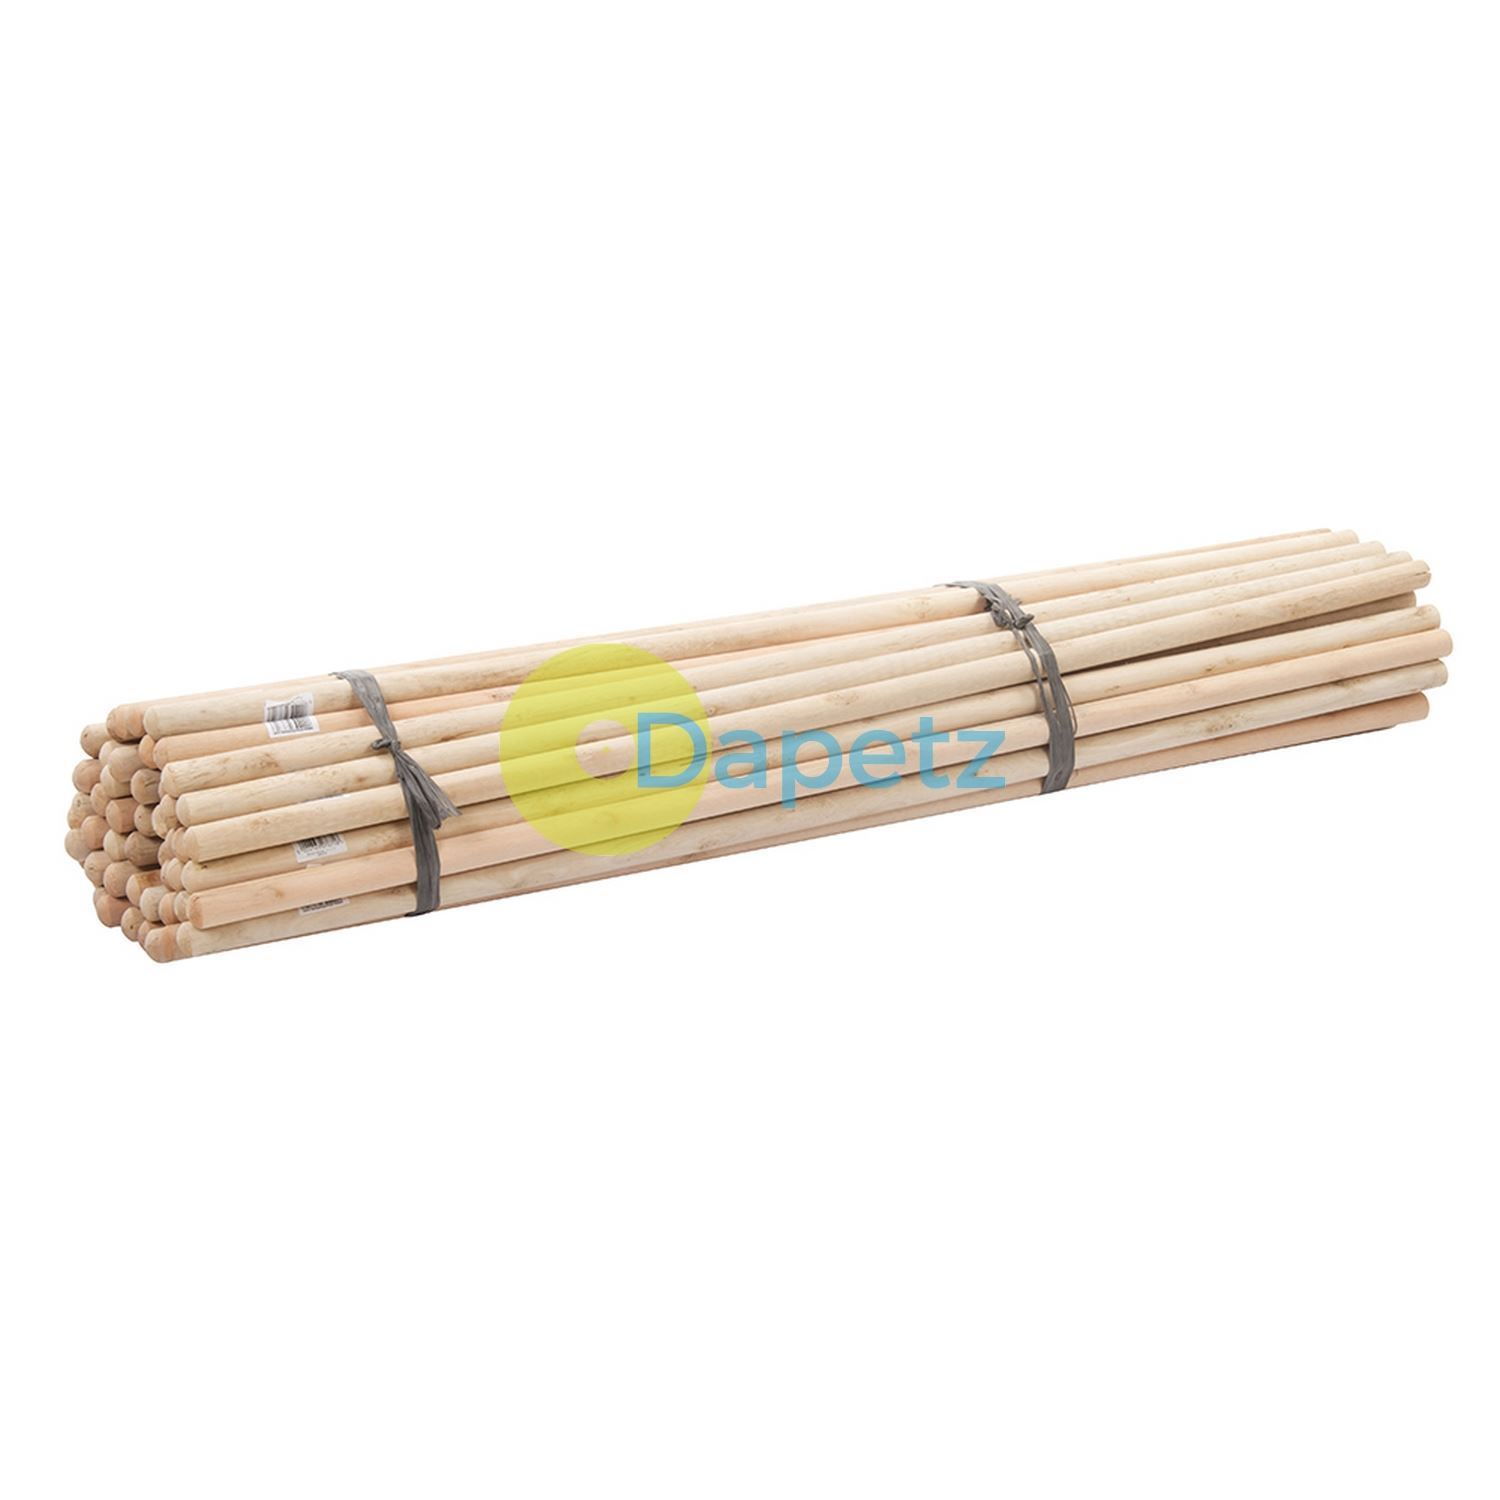 Dia 50Pce Broom Handles 4' X 1-1 8  Wooden Handles For Larger Broom Heads